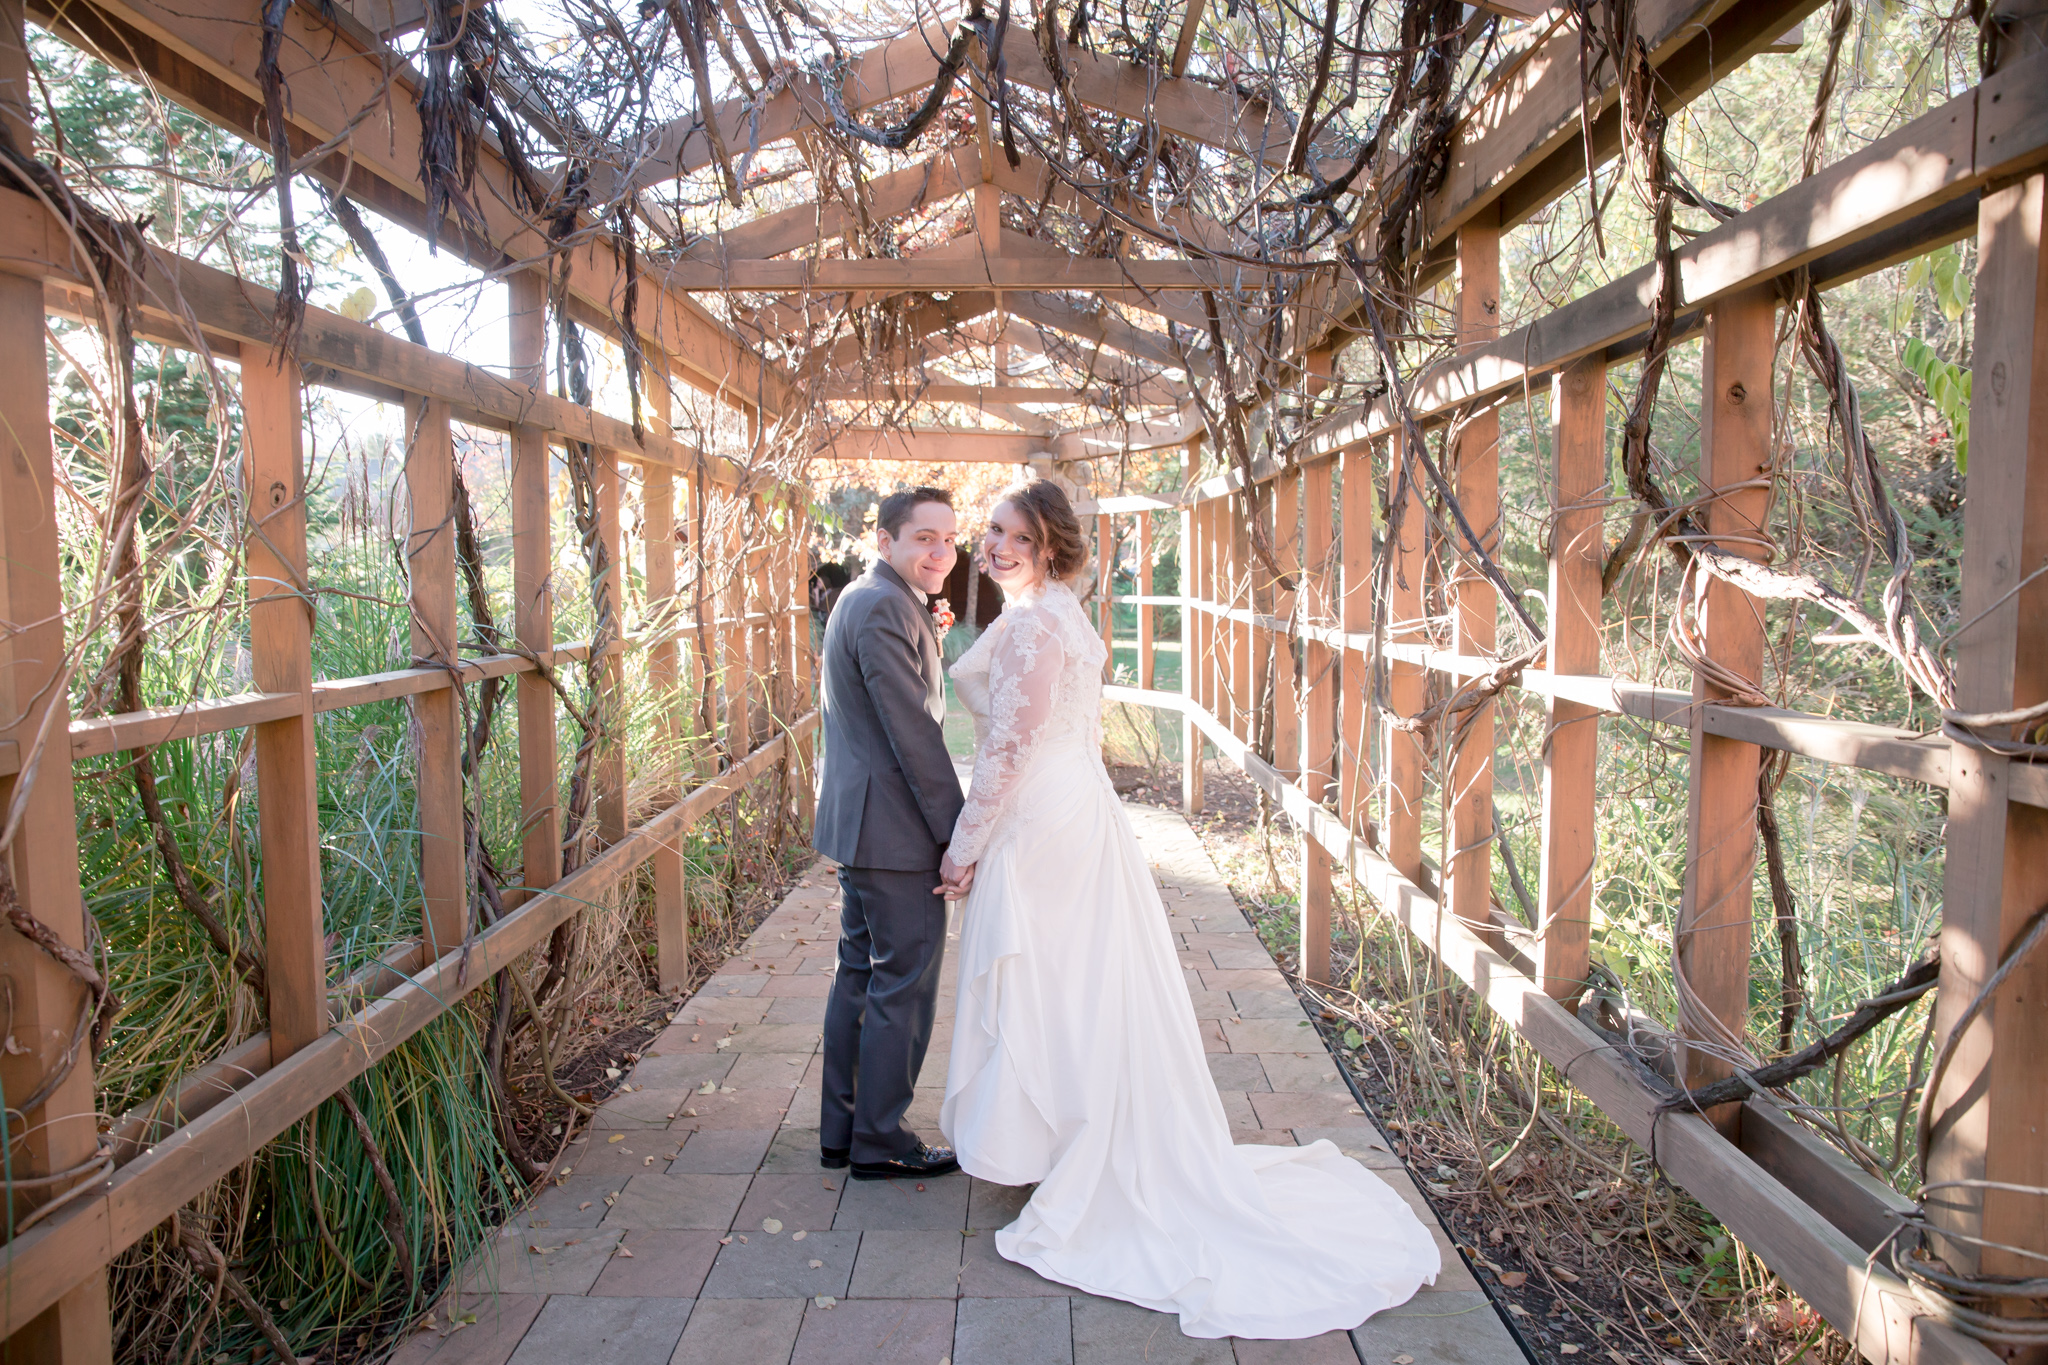 Um...One of my favorite photos! Love the wooden covered walkway!